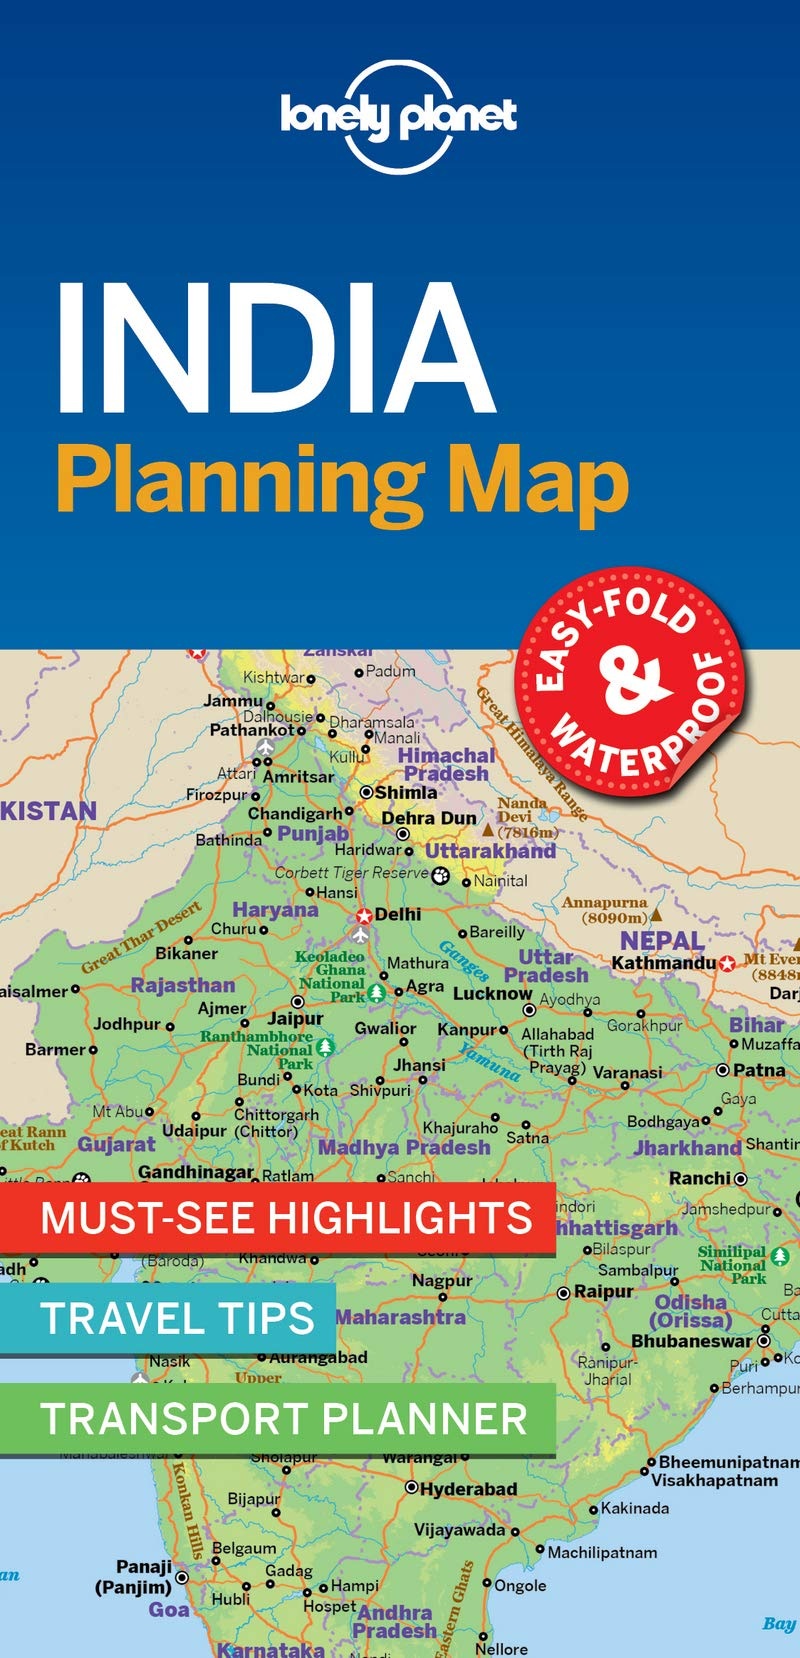 Hampi India Map.Lonely Planet India Planning Map Lonely Planet 9781787014572